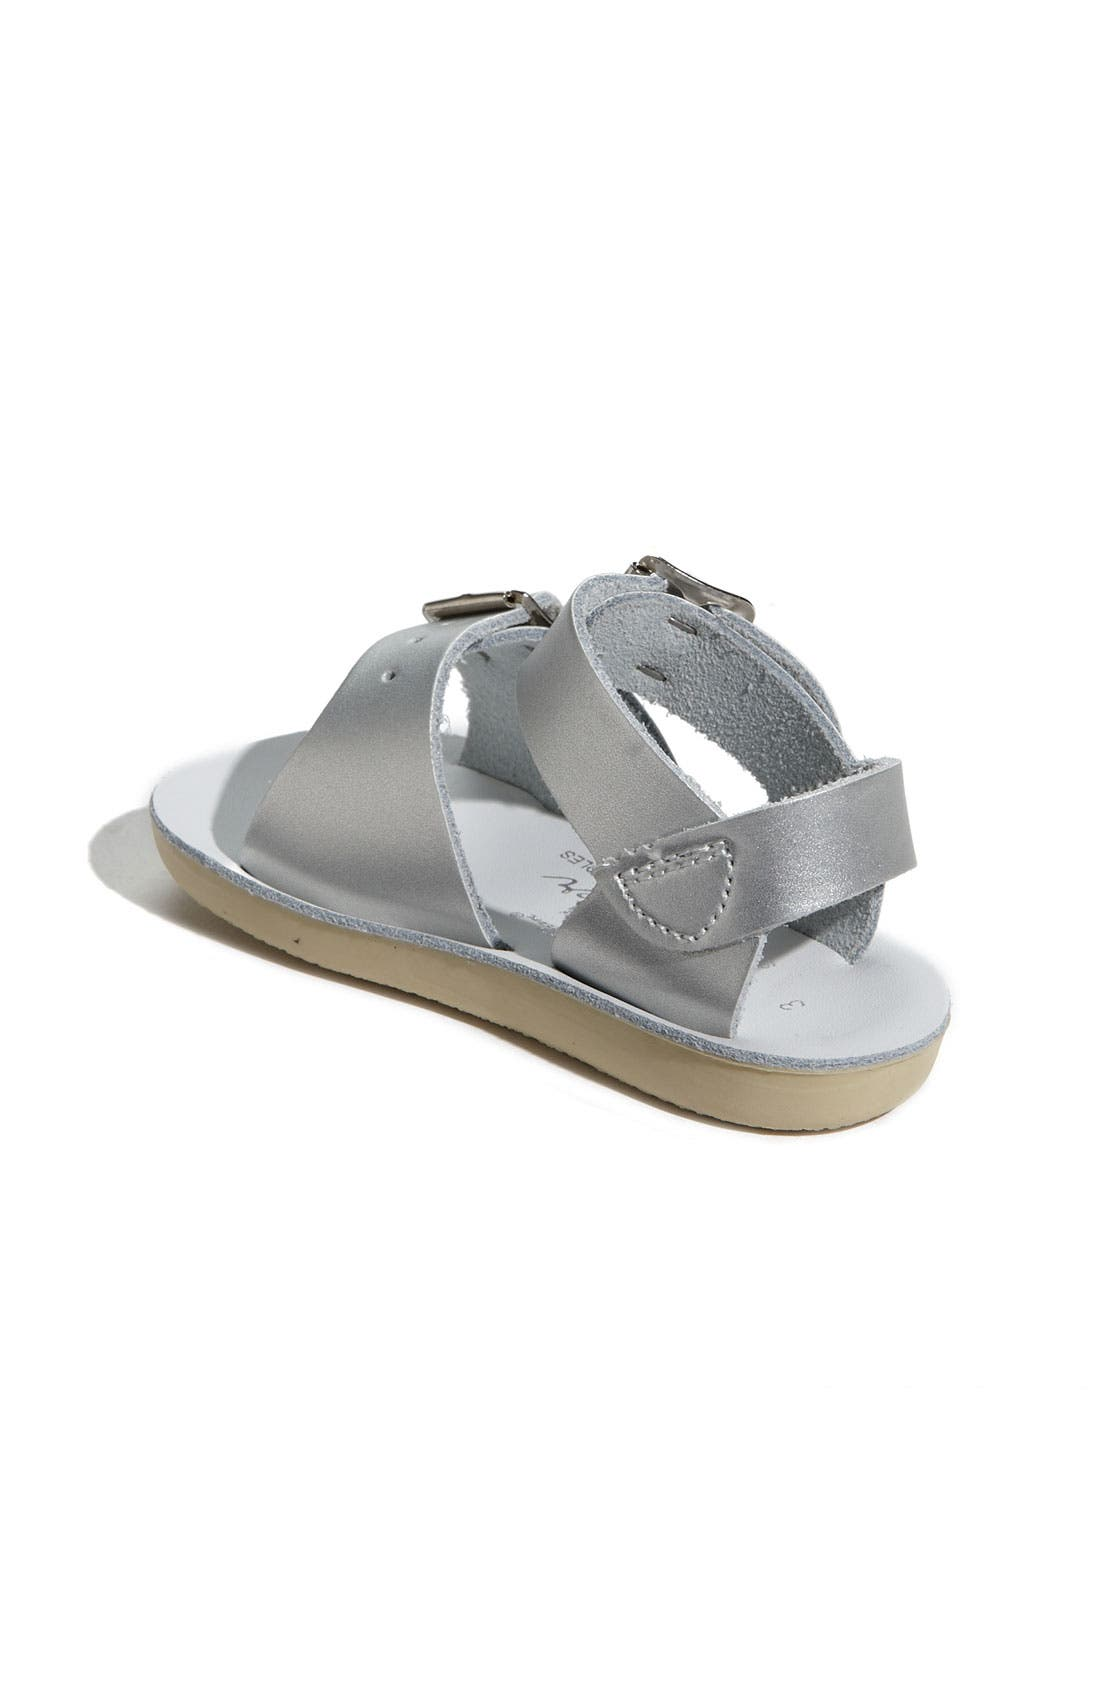 Surfer Water Friendly Sandal,                             Alternate thumbnail 7, color,                             SILVER